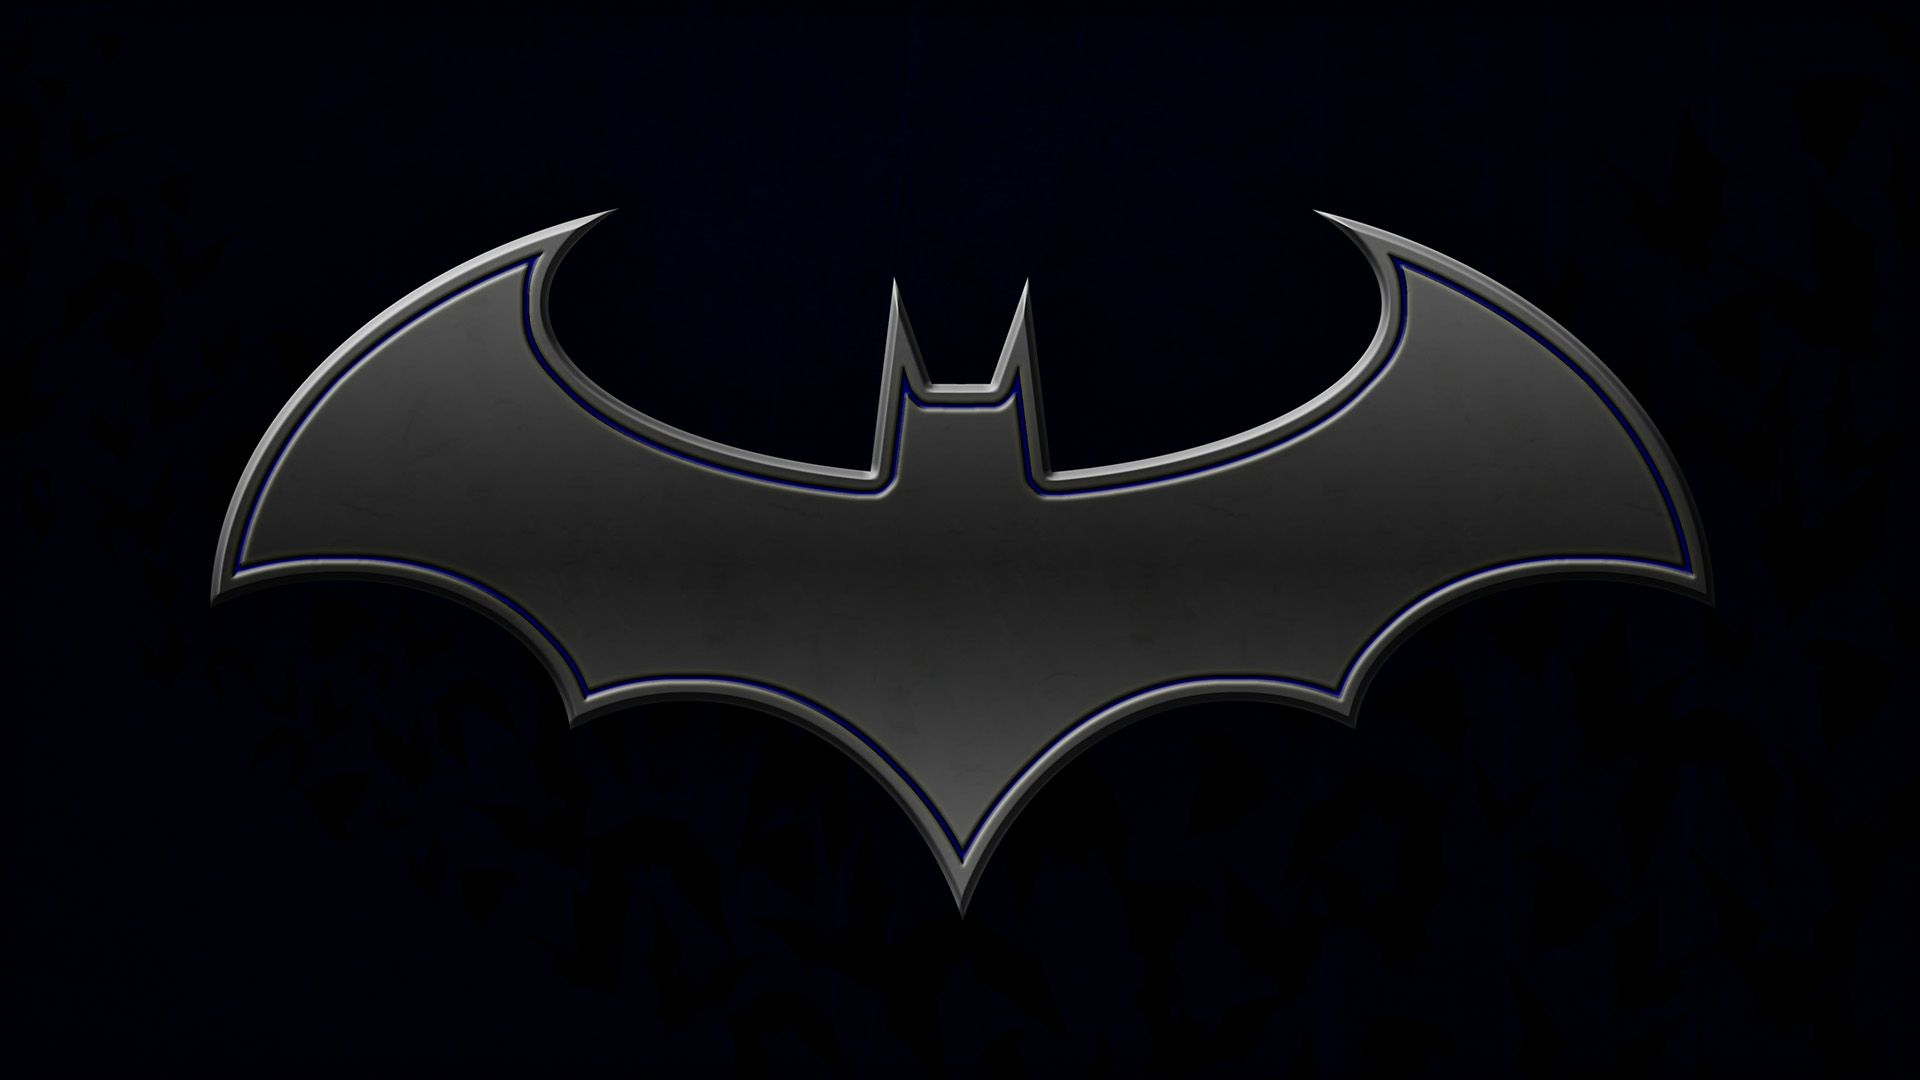 Undefined Cool Wallpaper For Iphone 40 Wallpapers: HD Batman Wallpapers Wallpaper 1920×1080 Batman Logo